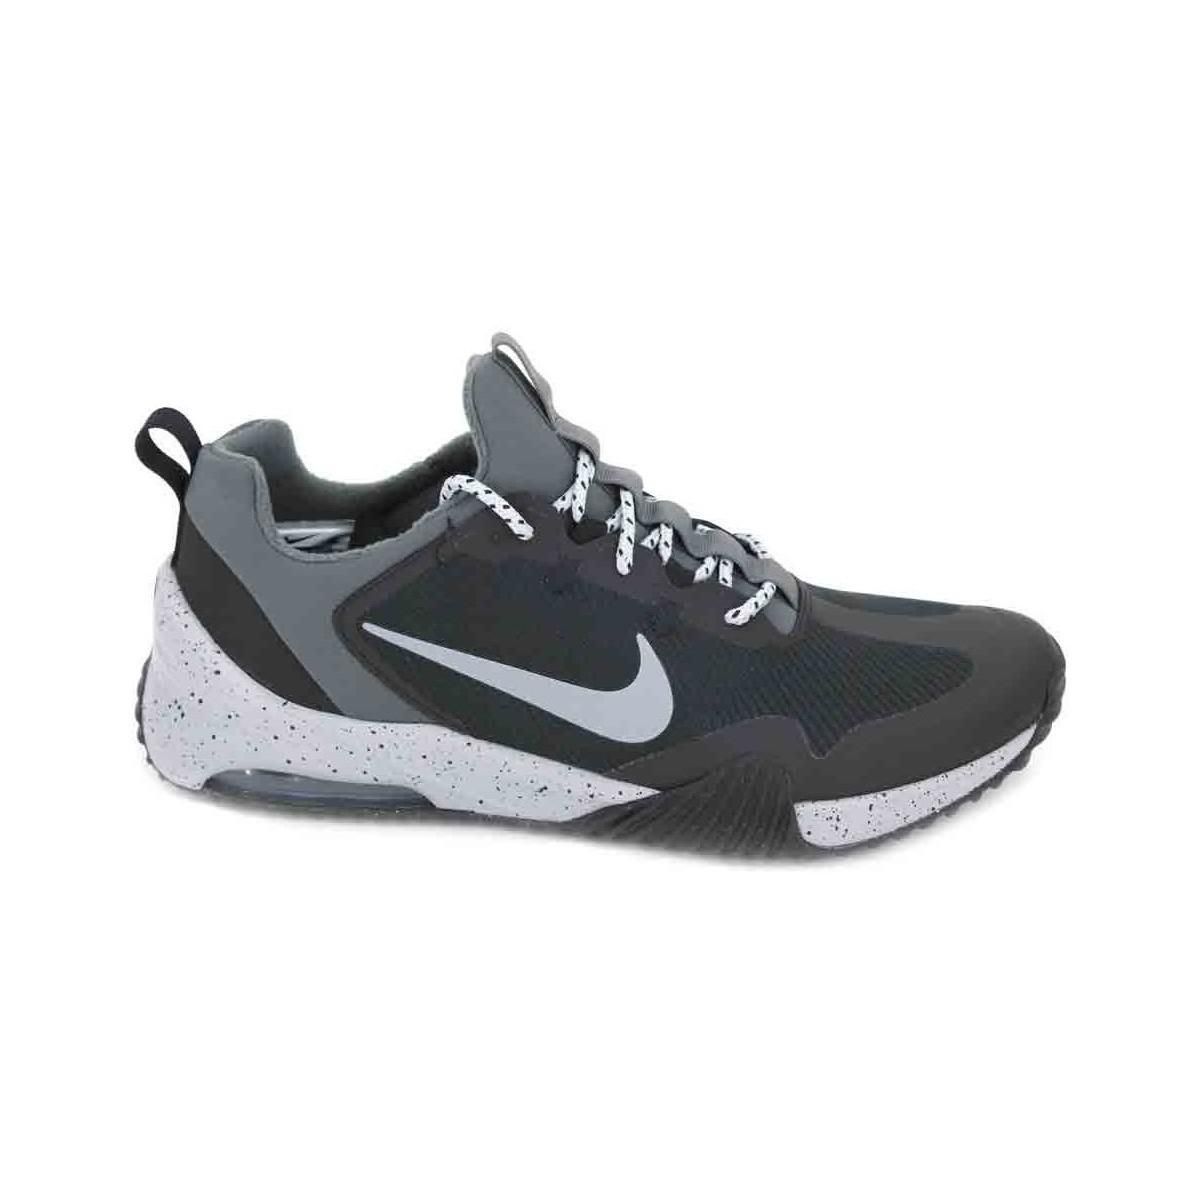 bd828efc56b Nike. Air Max Grigora 916767 Men s Trainers Men s Shoes (trainers) In Black